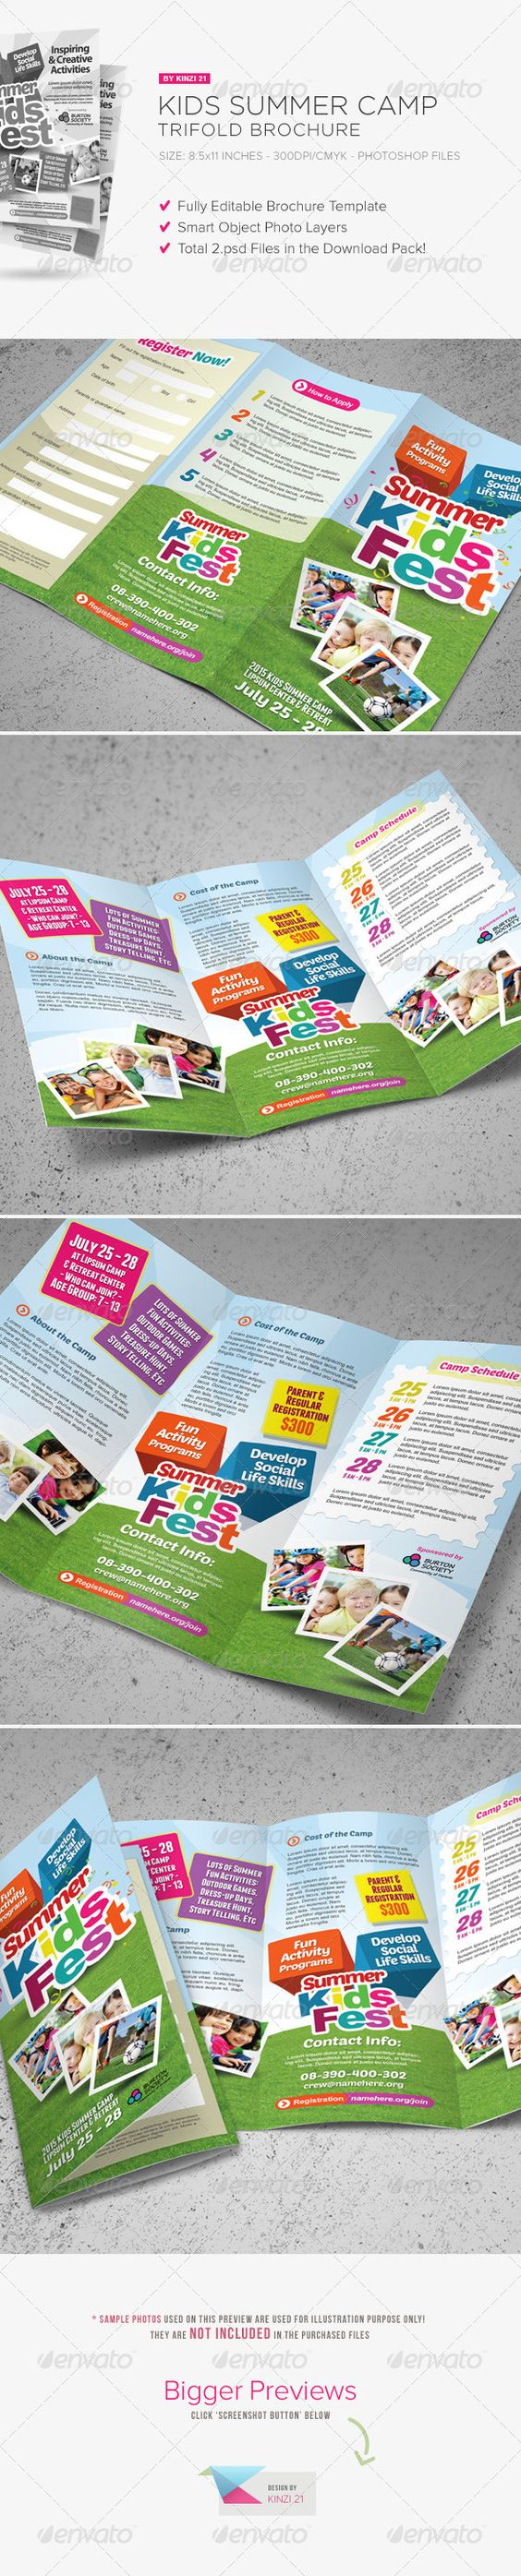 summer camp brochure template - kids summer camp trifold brochure summer graphics and